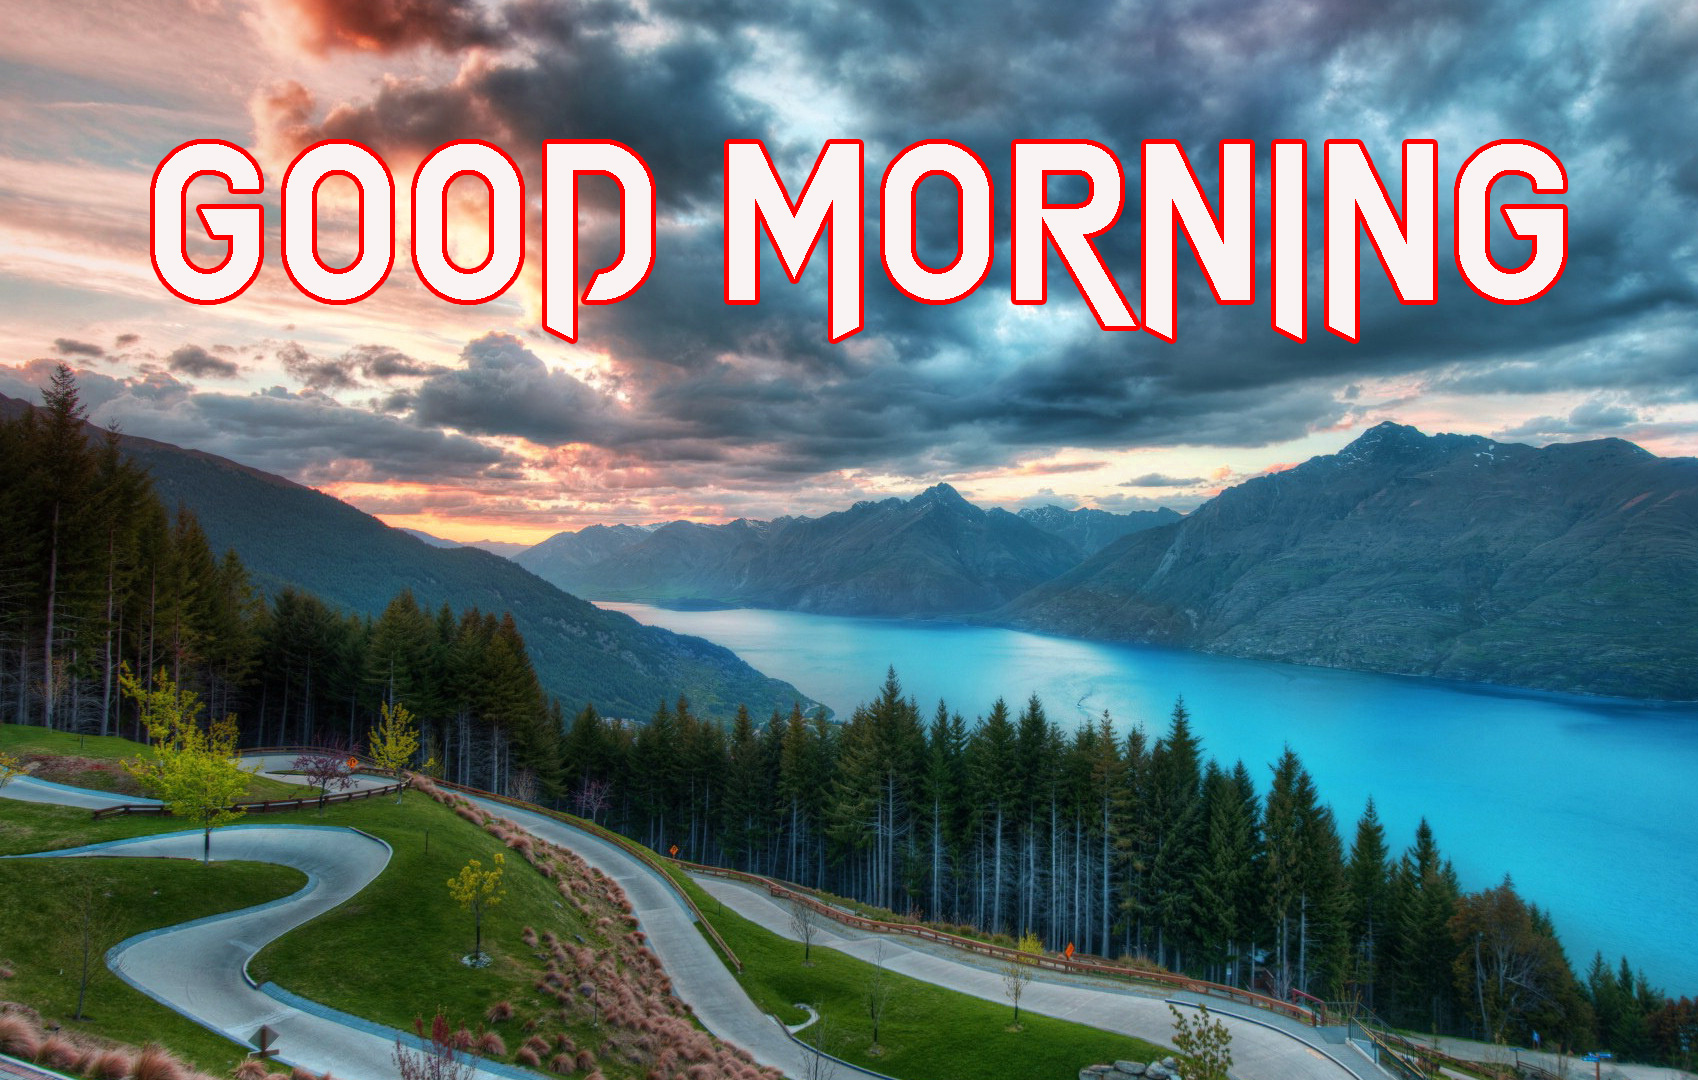 GOOD MORNING IMAGES WALLPAPER PICTURES FREE HD DOWNLOAD FOR FACEBOOK